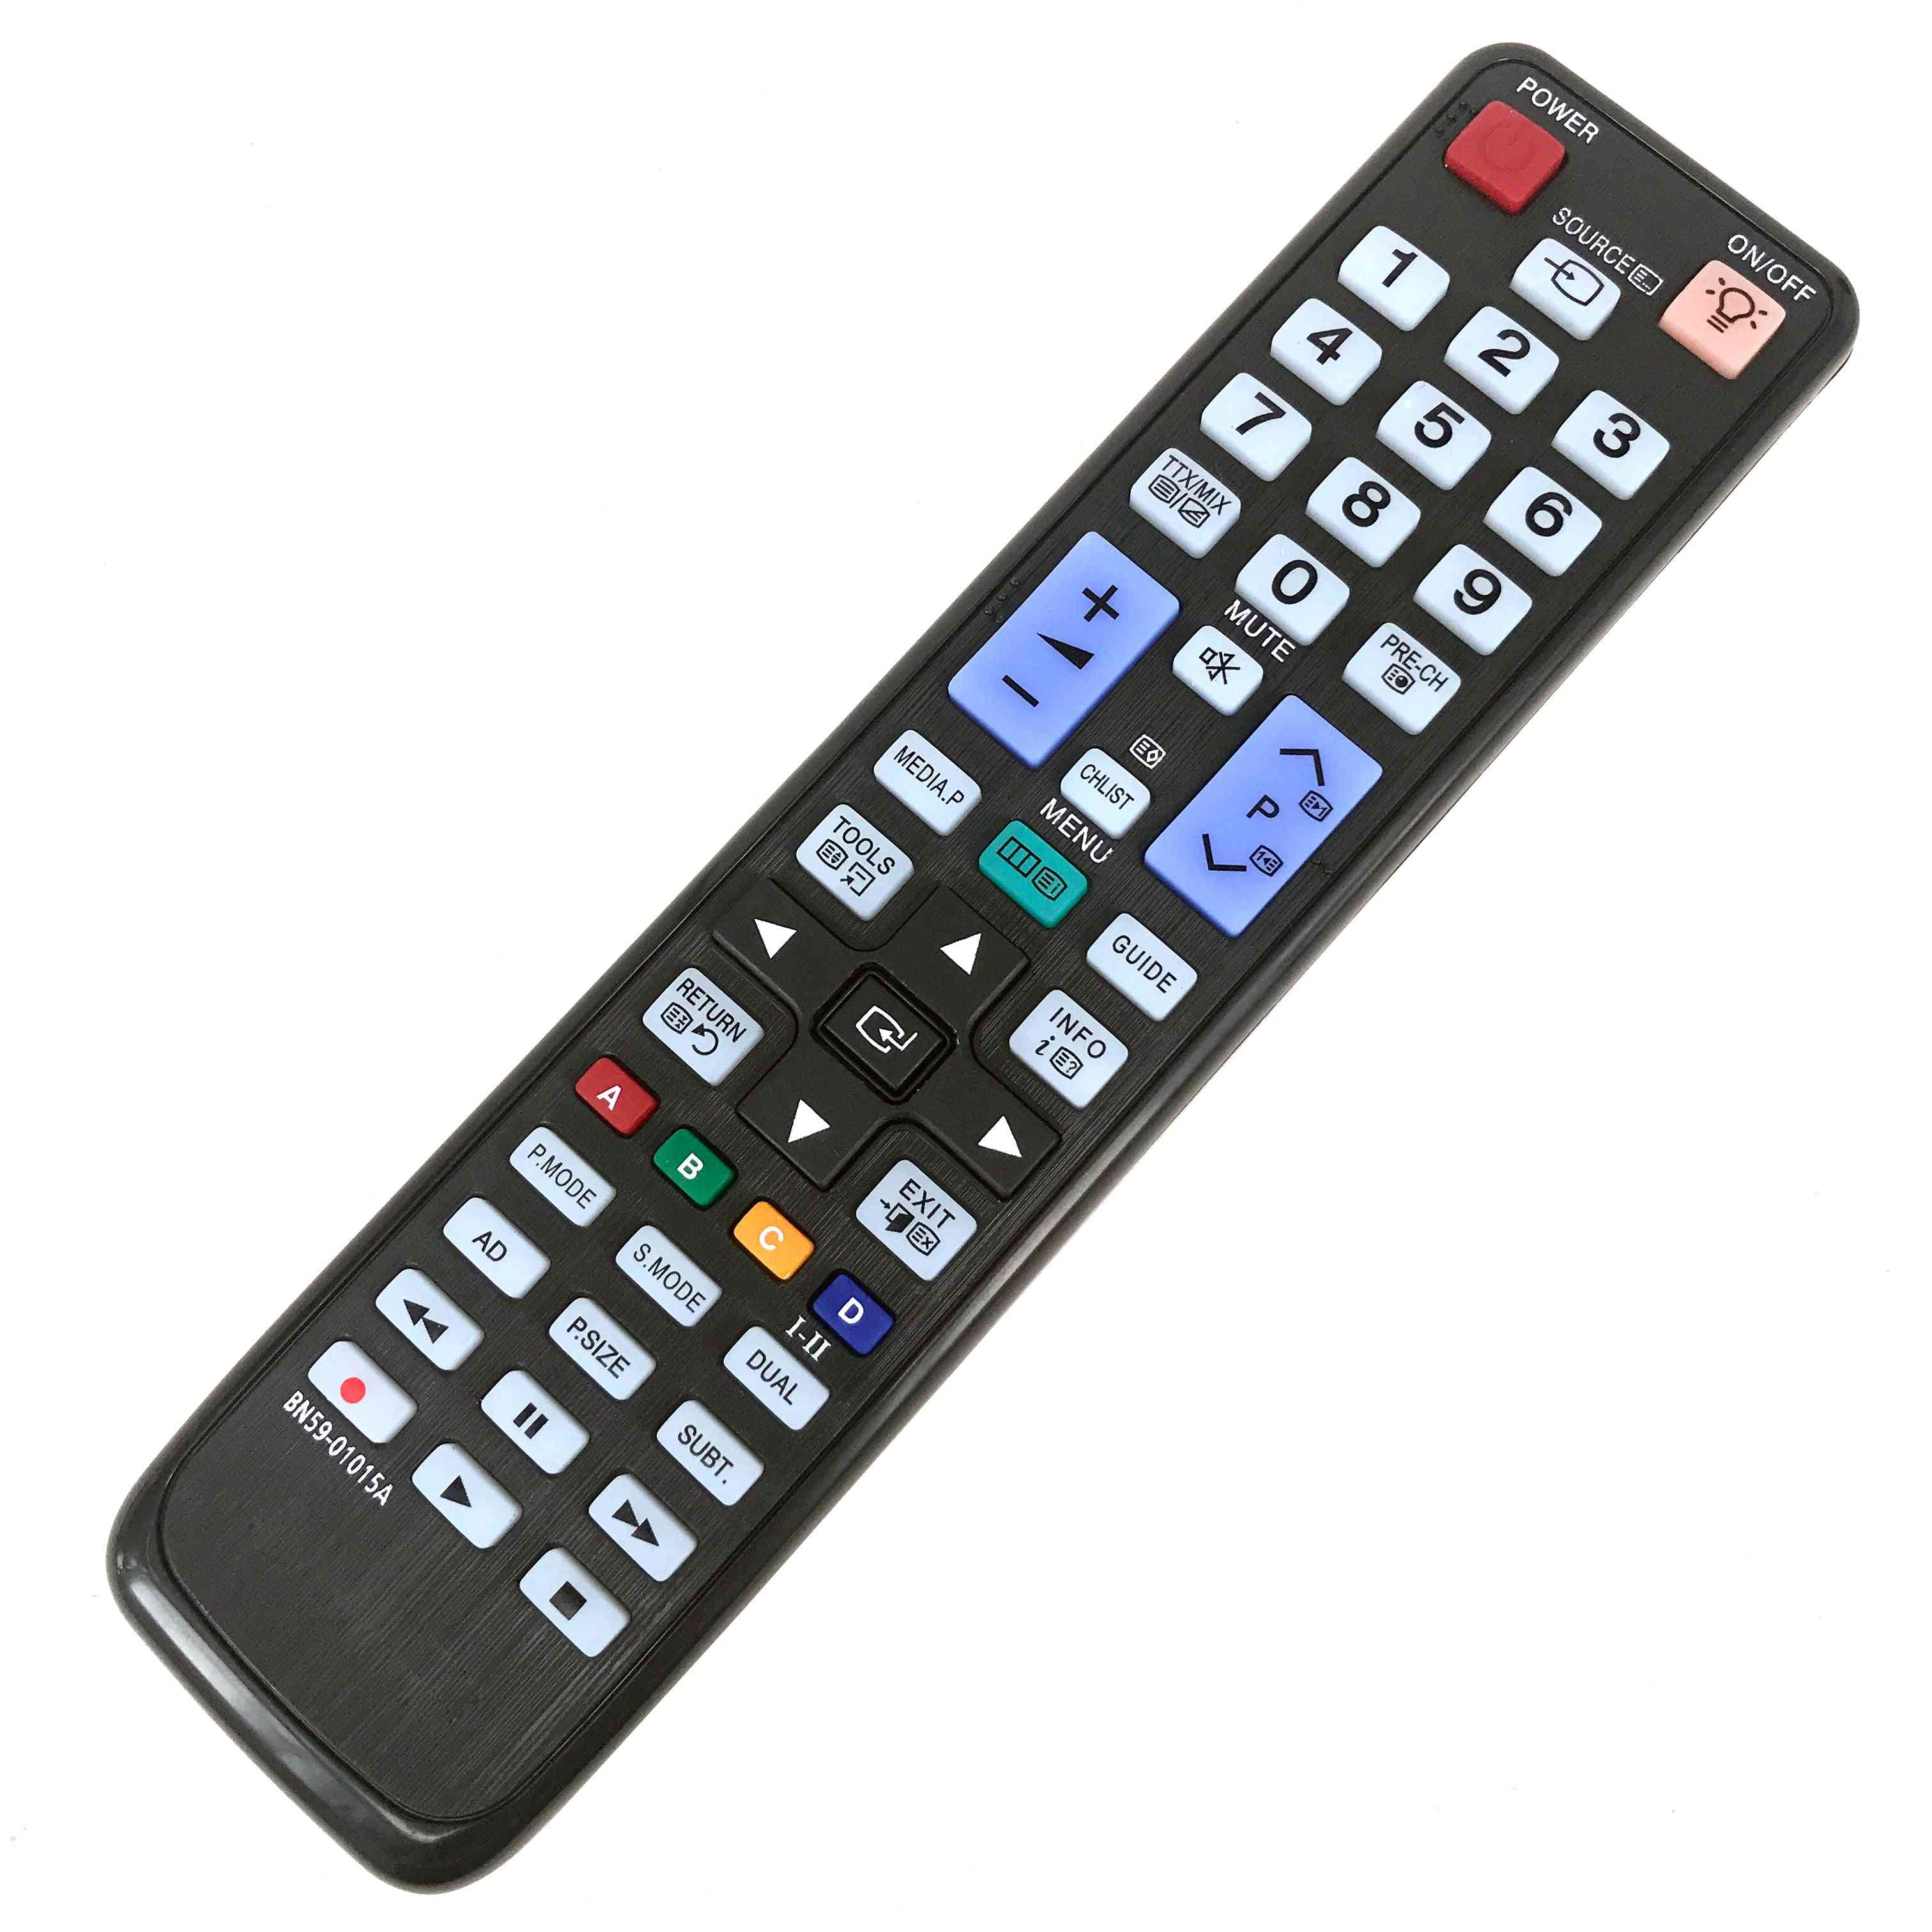 Remote Control Bn59-01015a For Samsung Lcd Tv